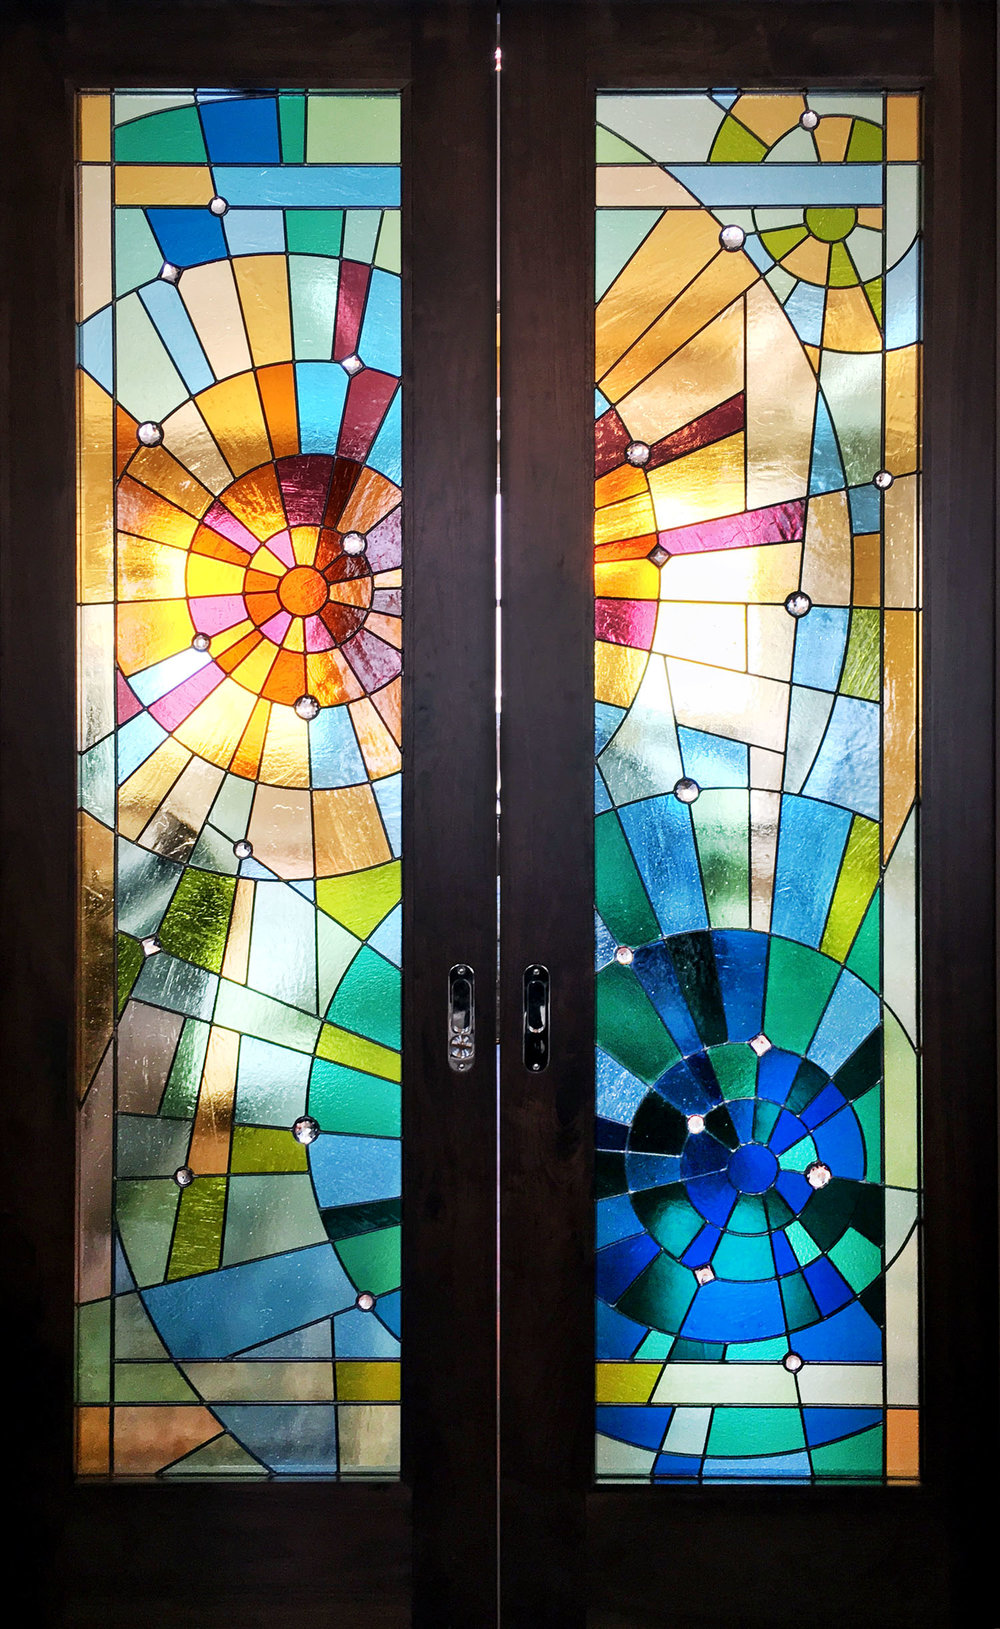 abstract stained glass pocket doors sunburst concentric palo alto atherton menlo park san jose san francisco bay area legacy glass.jpg